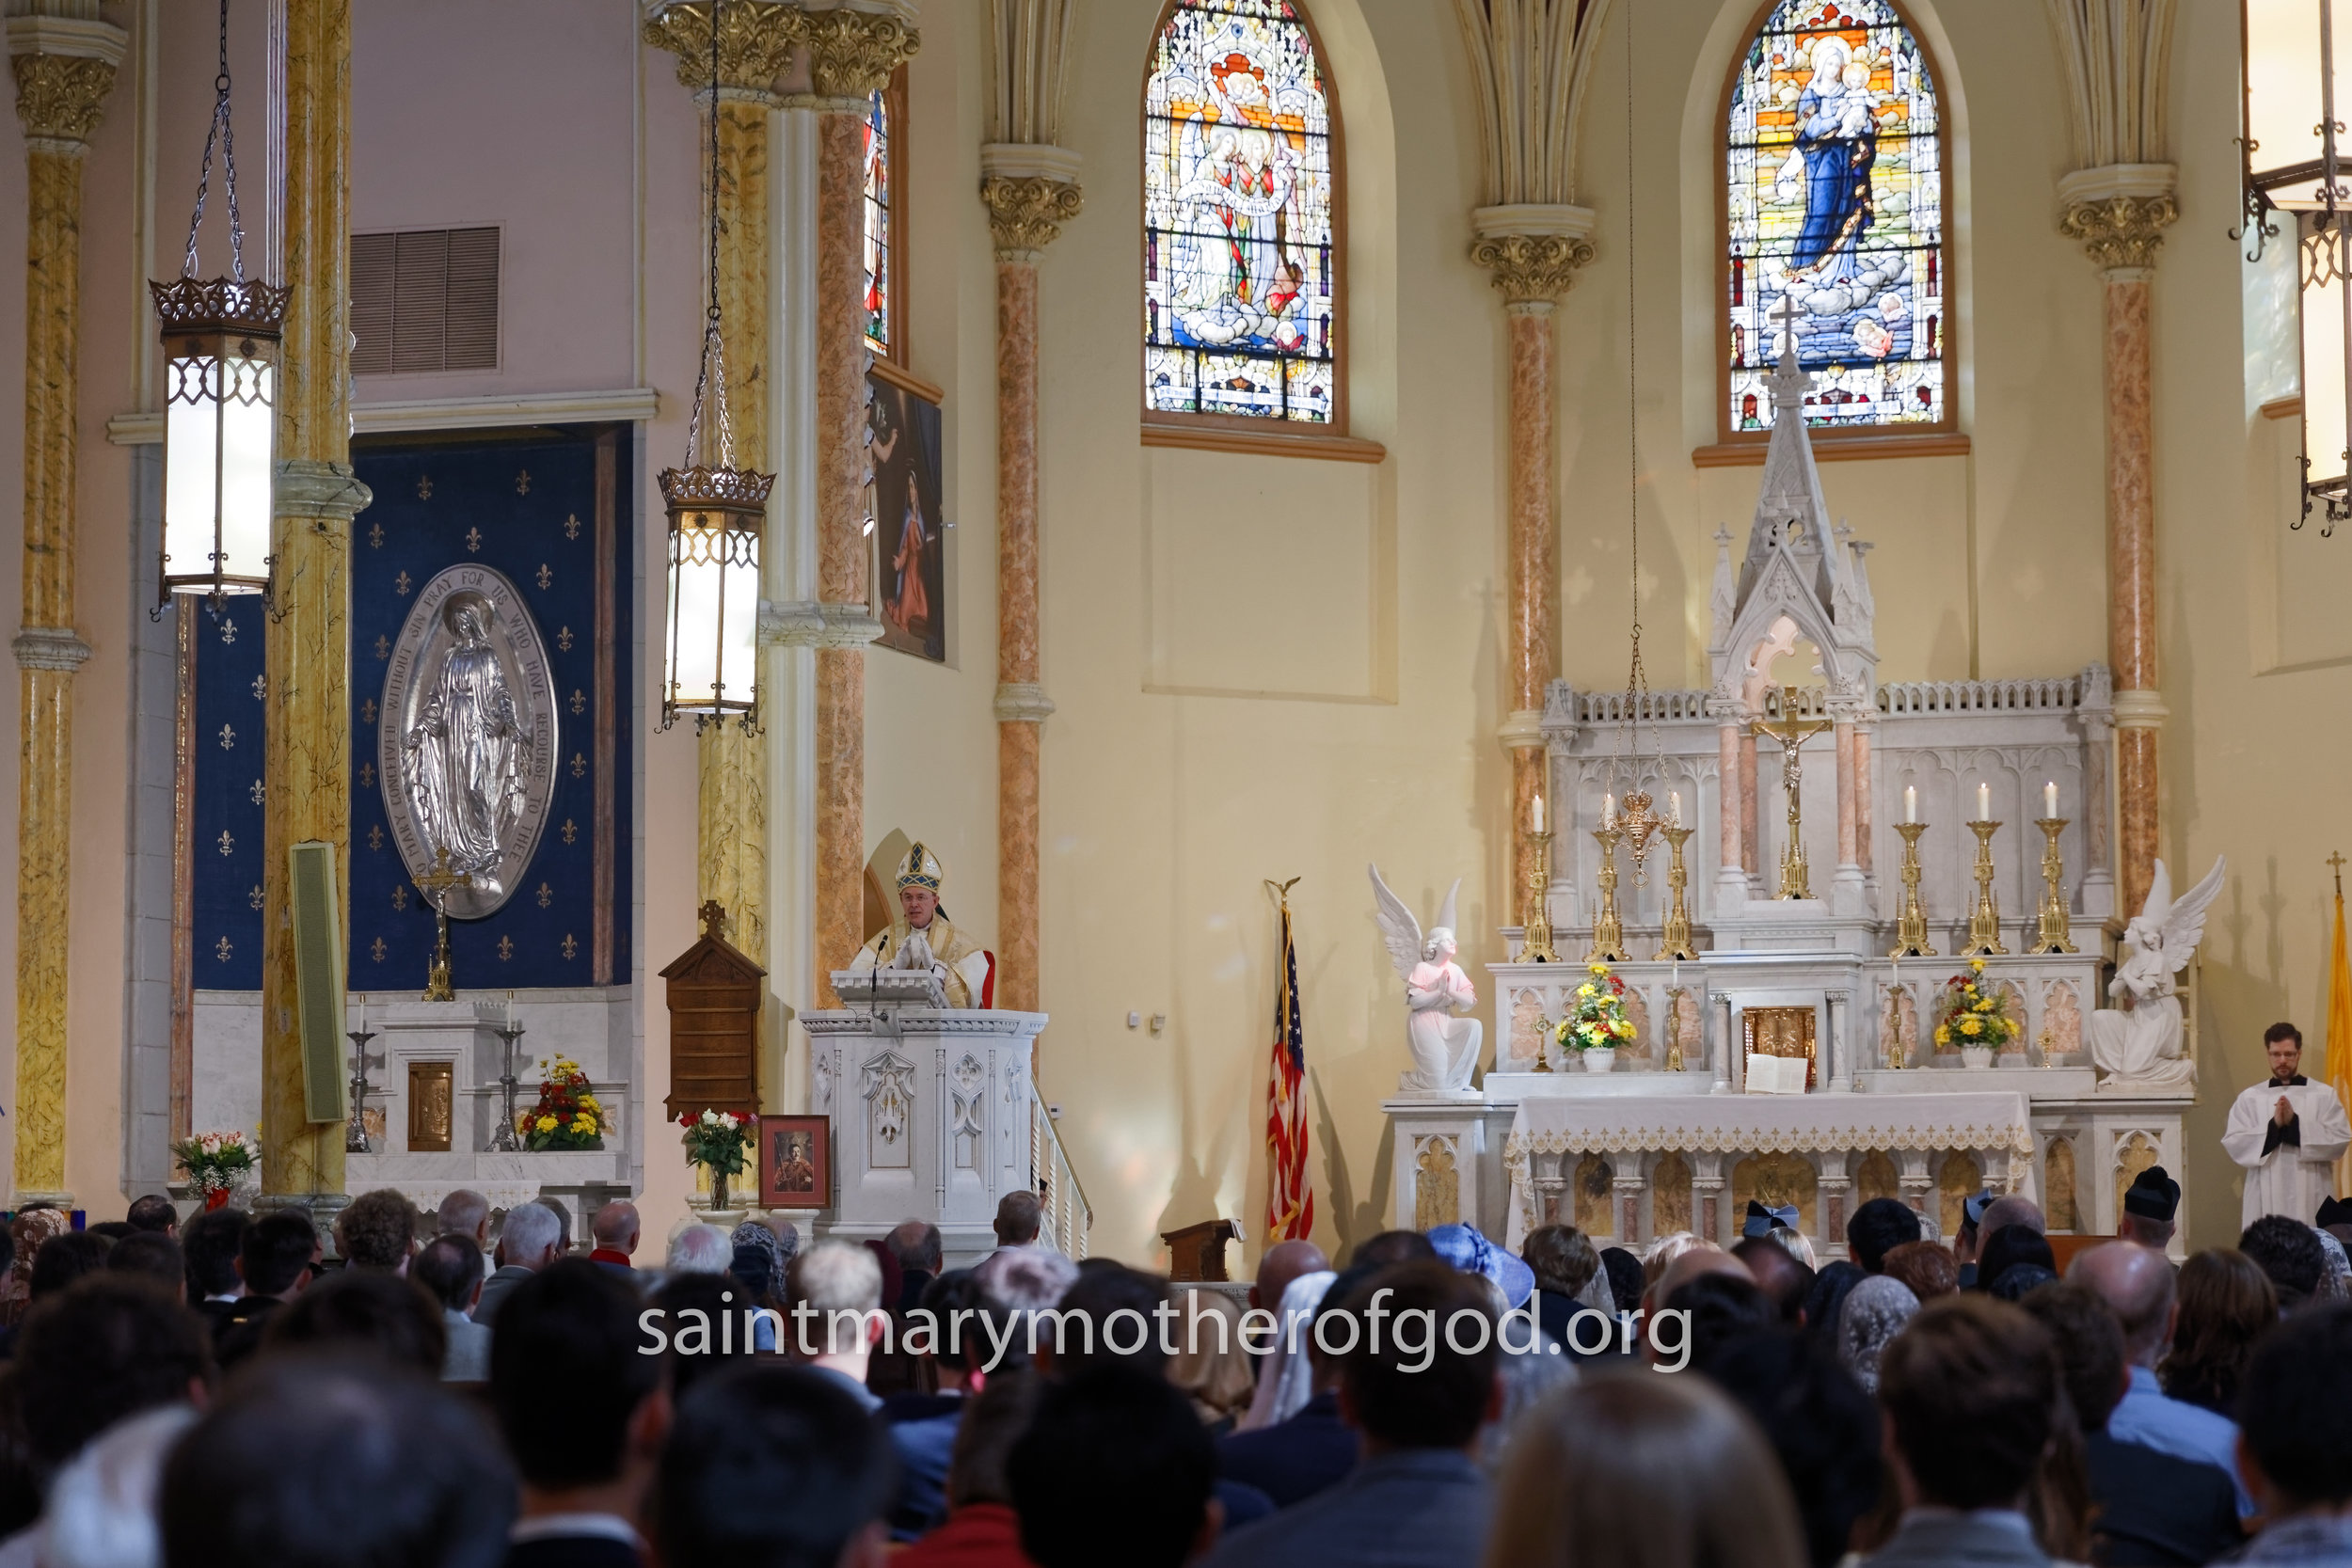 Saint Mary Mother of God Blessed Karl Vitacco Photos-23.jpg